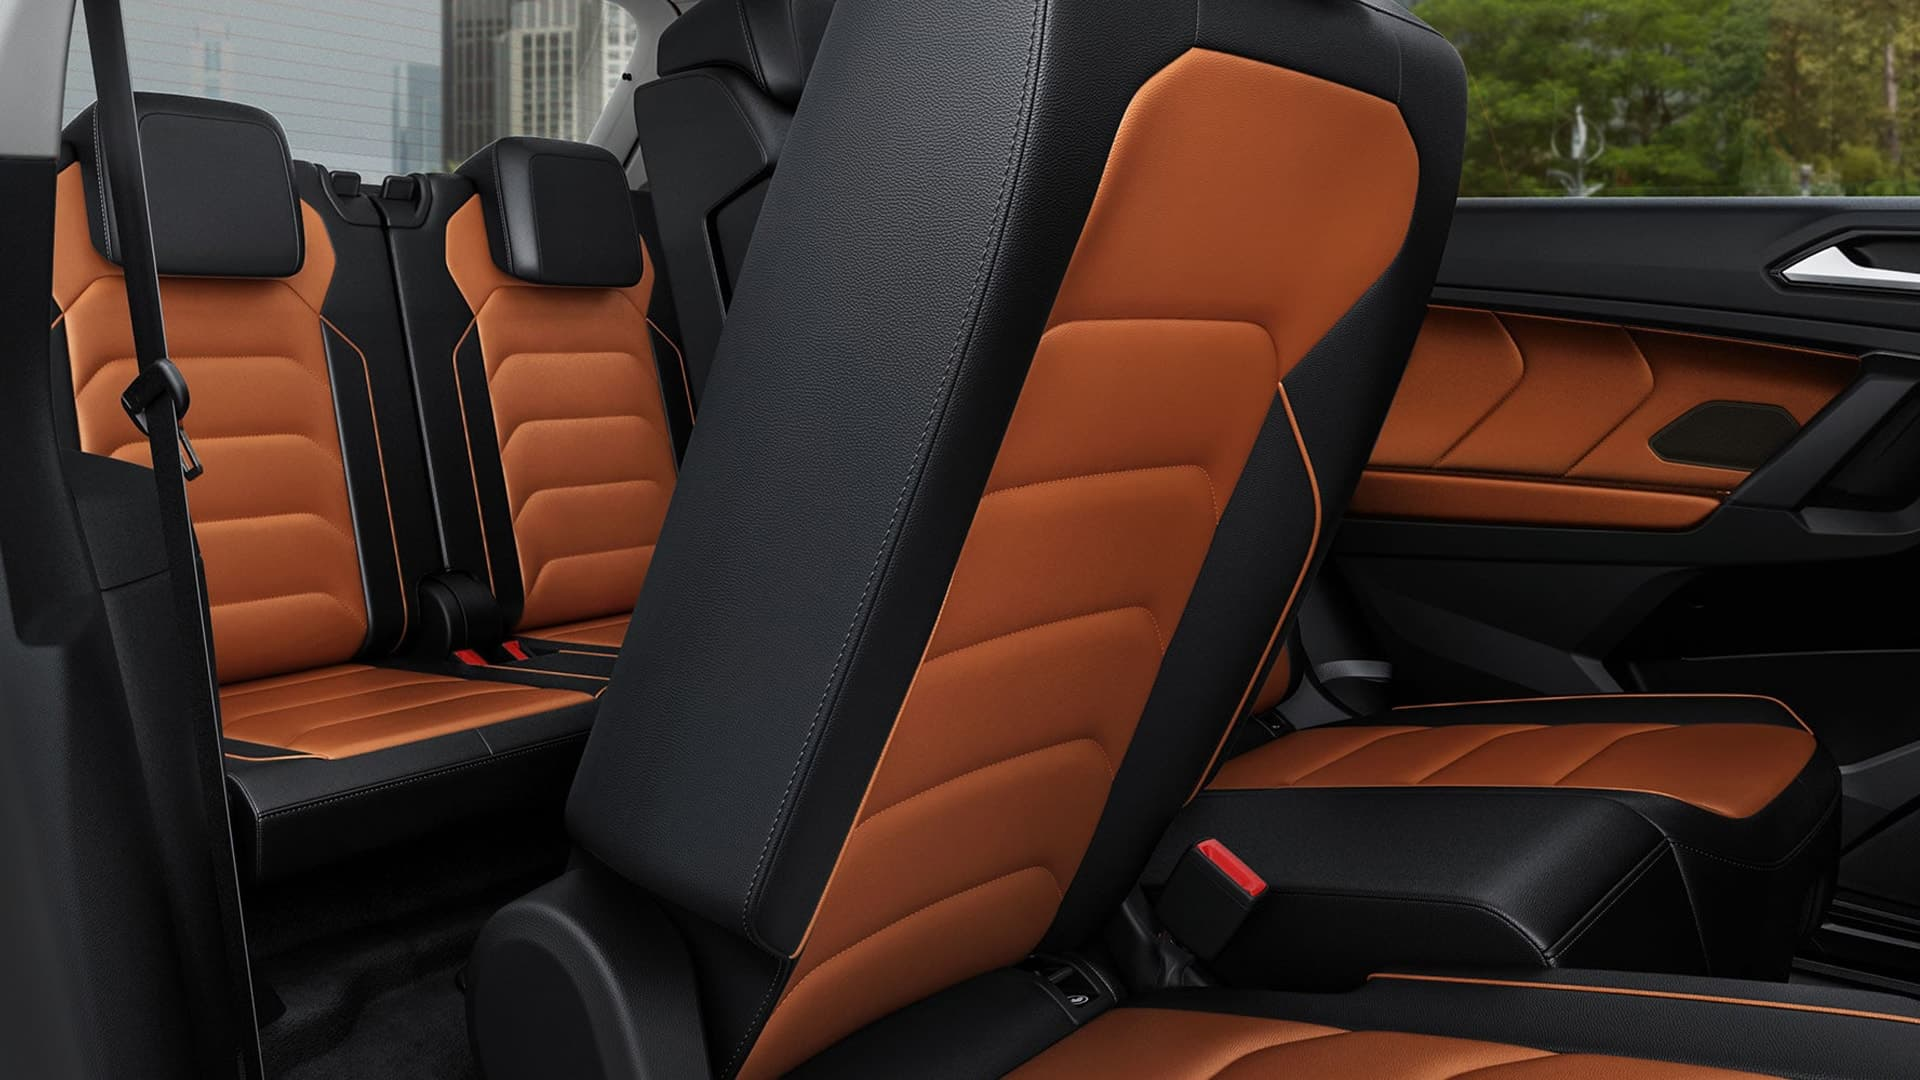 2020 Tiguan Three row seating